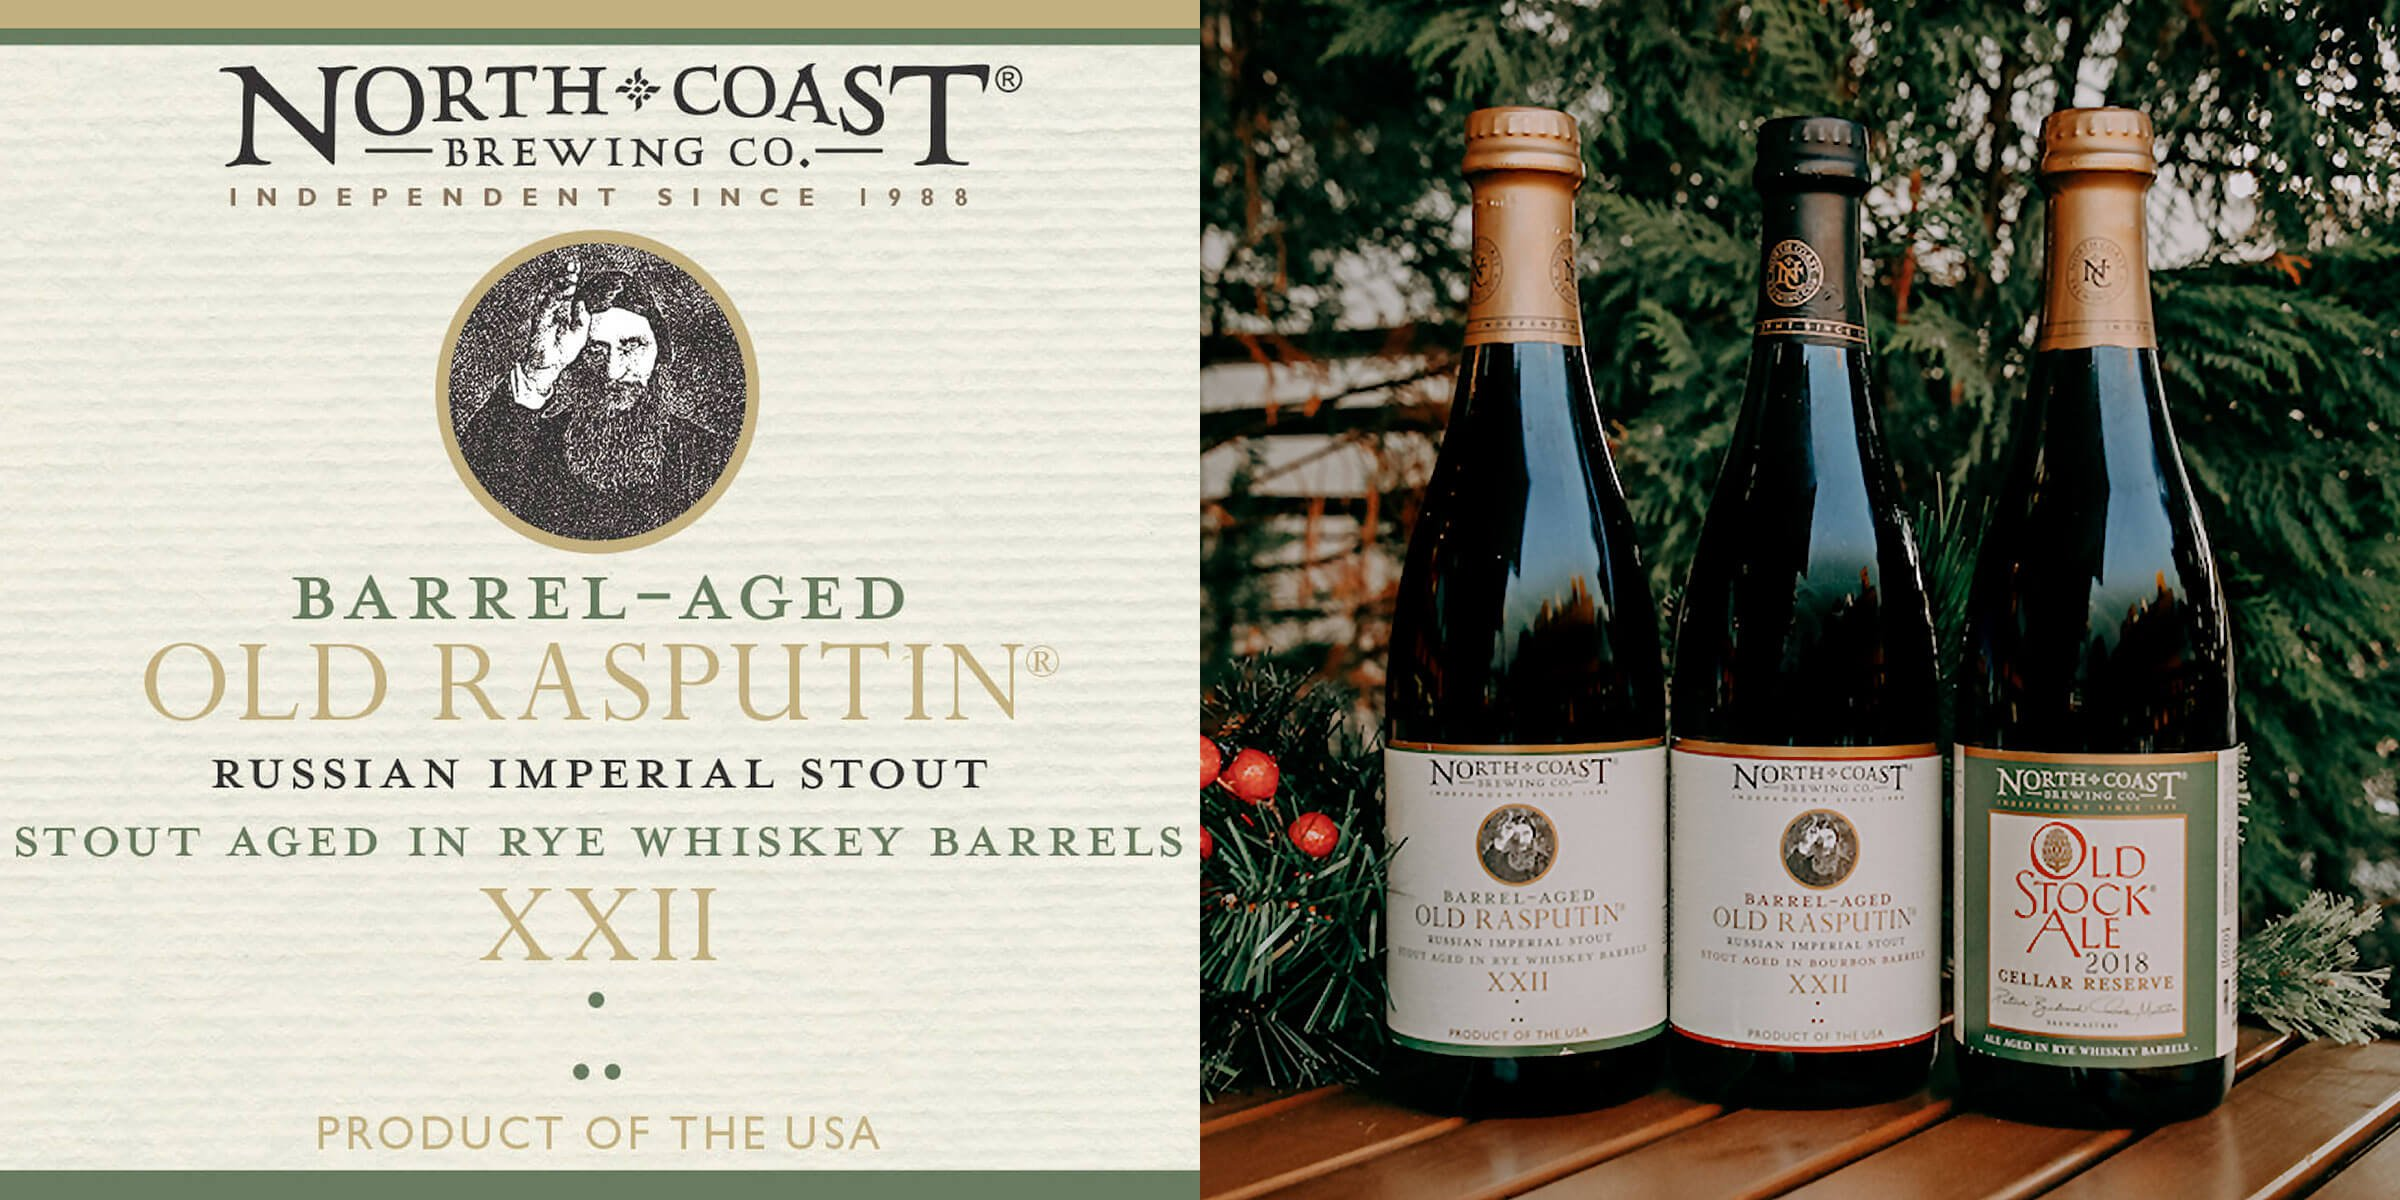 A trio of limited bottled offerings from North Coast Brewing Co. including two variants of Barrel-aged Old Rasputin XXII and the Old Stock Cellar Reserve 2018